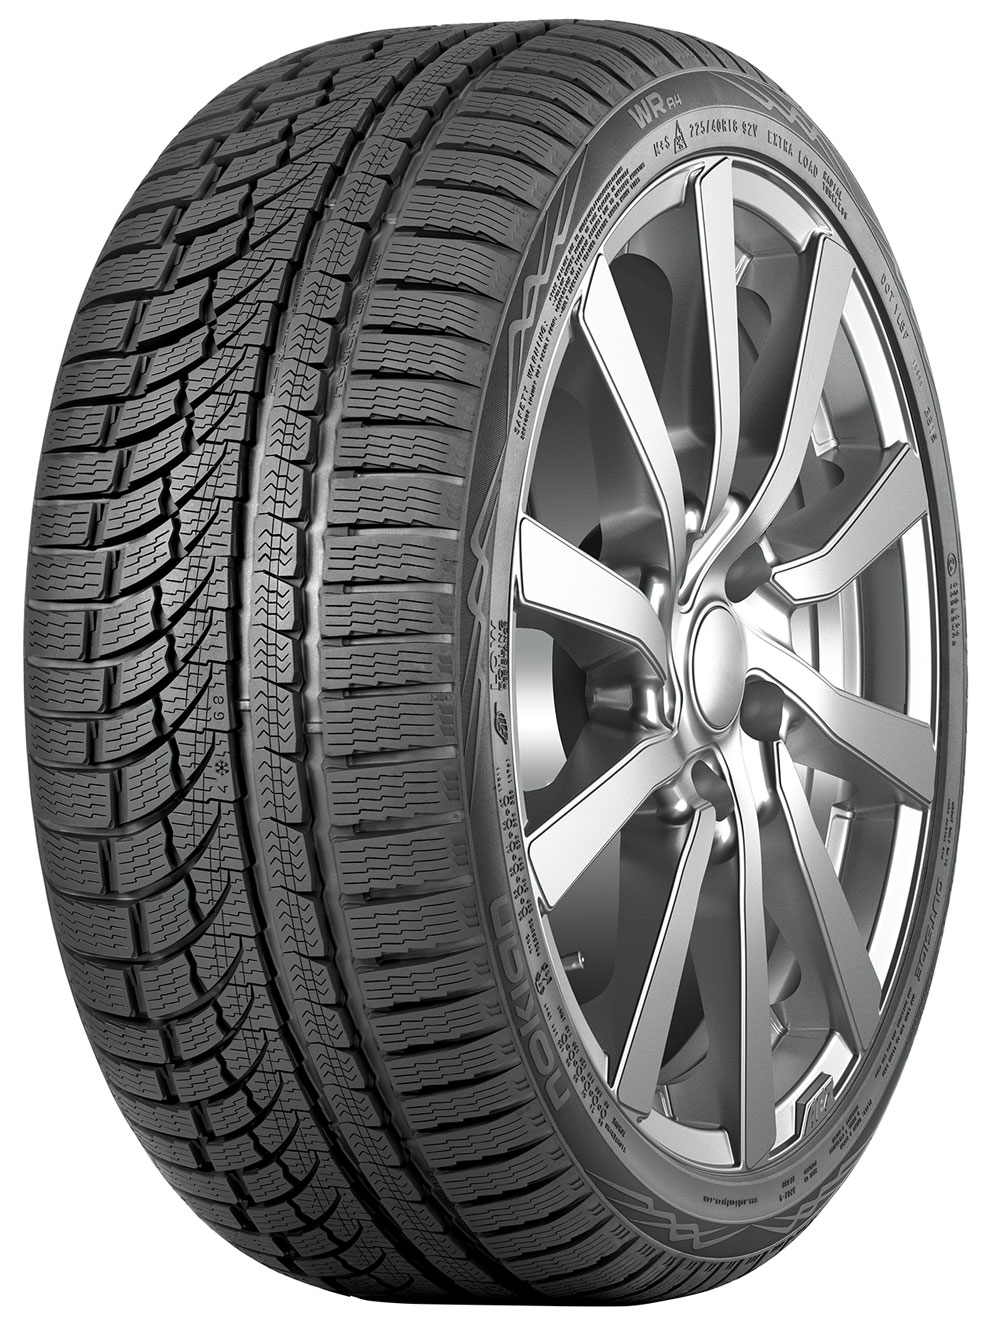 Gomme Autovettura Nokian 225/45 R19 96V WR A4 XL M+S Invernale